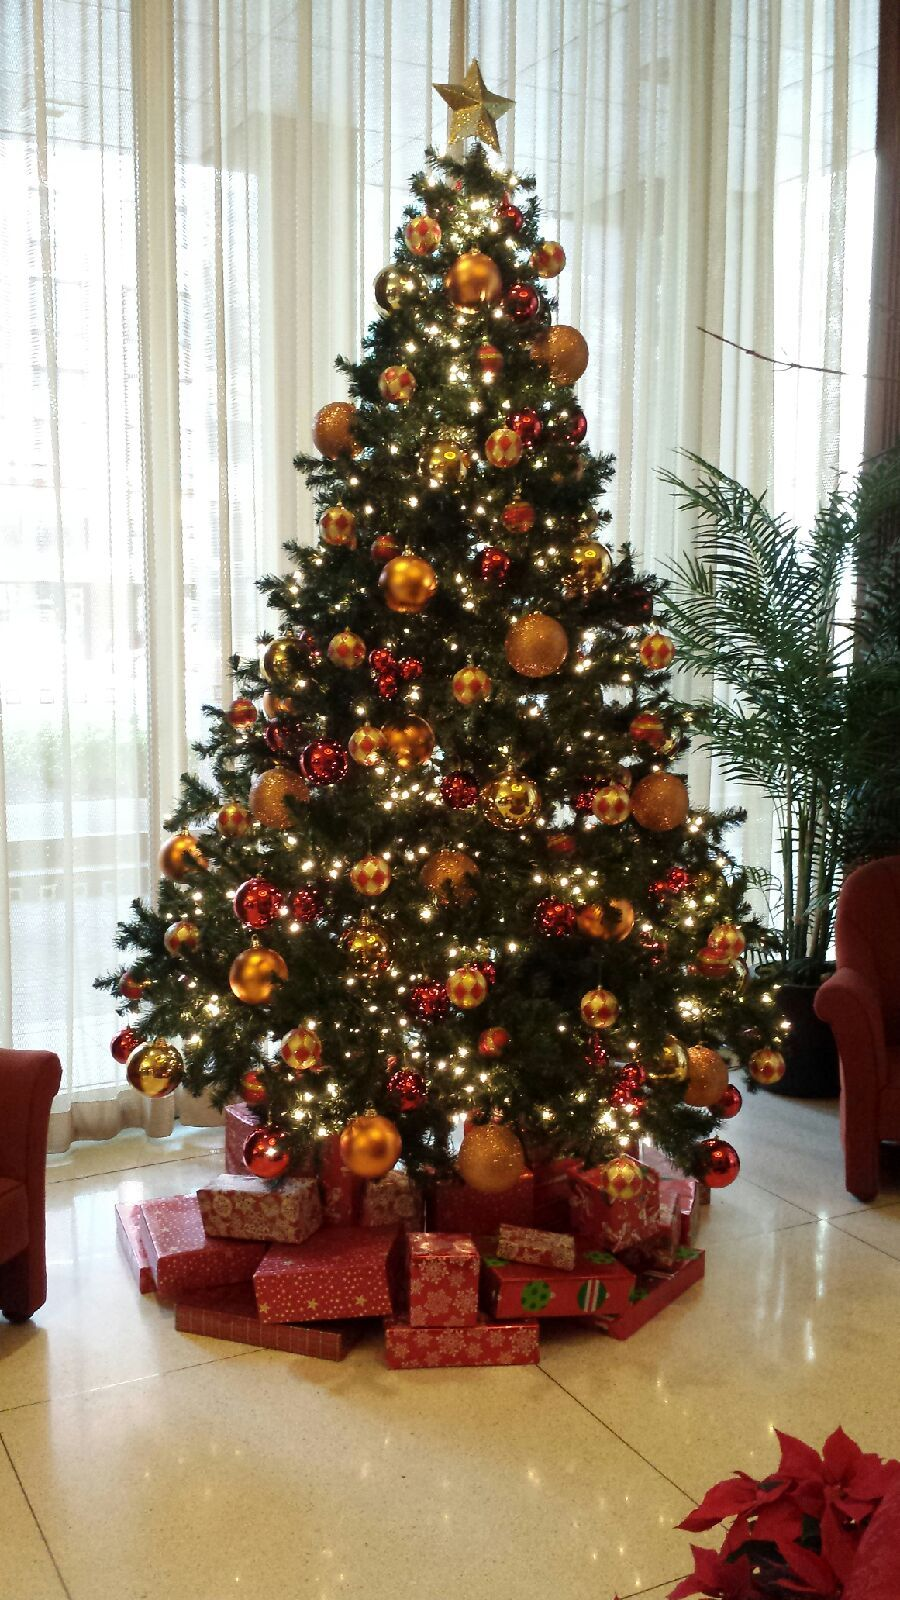 One of our Christmas Tree designs - we can make your #NYC holiday ...